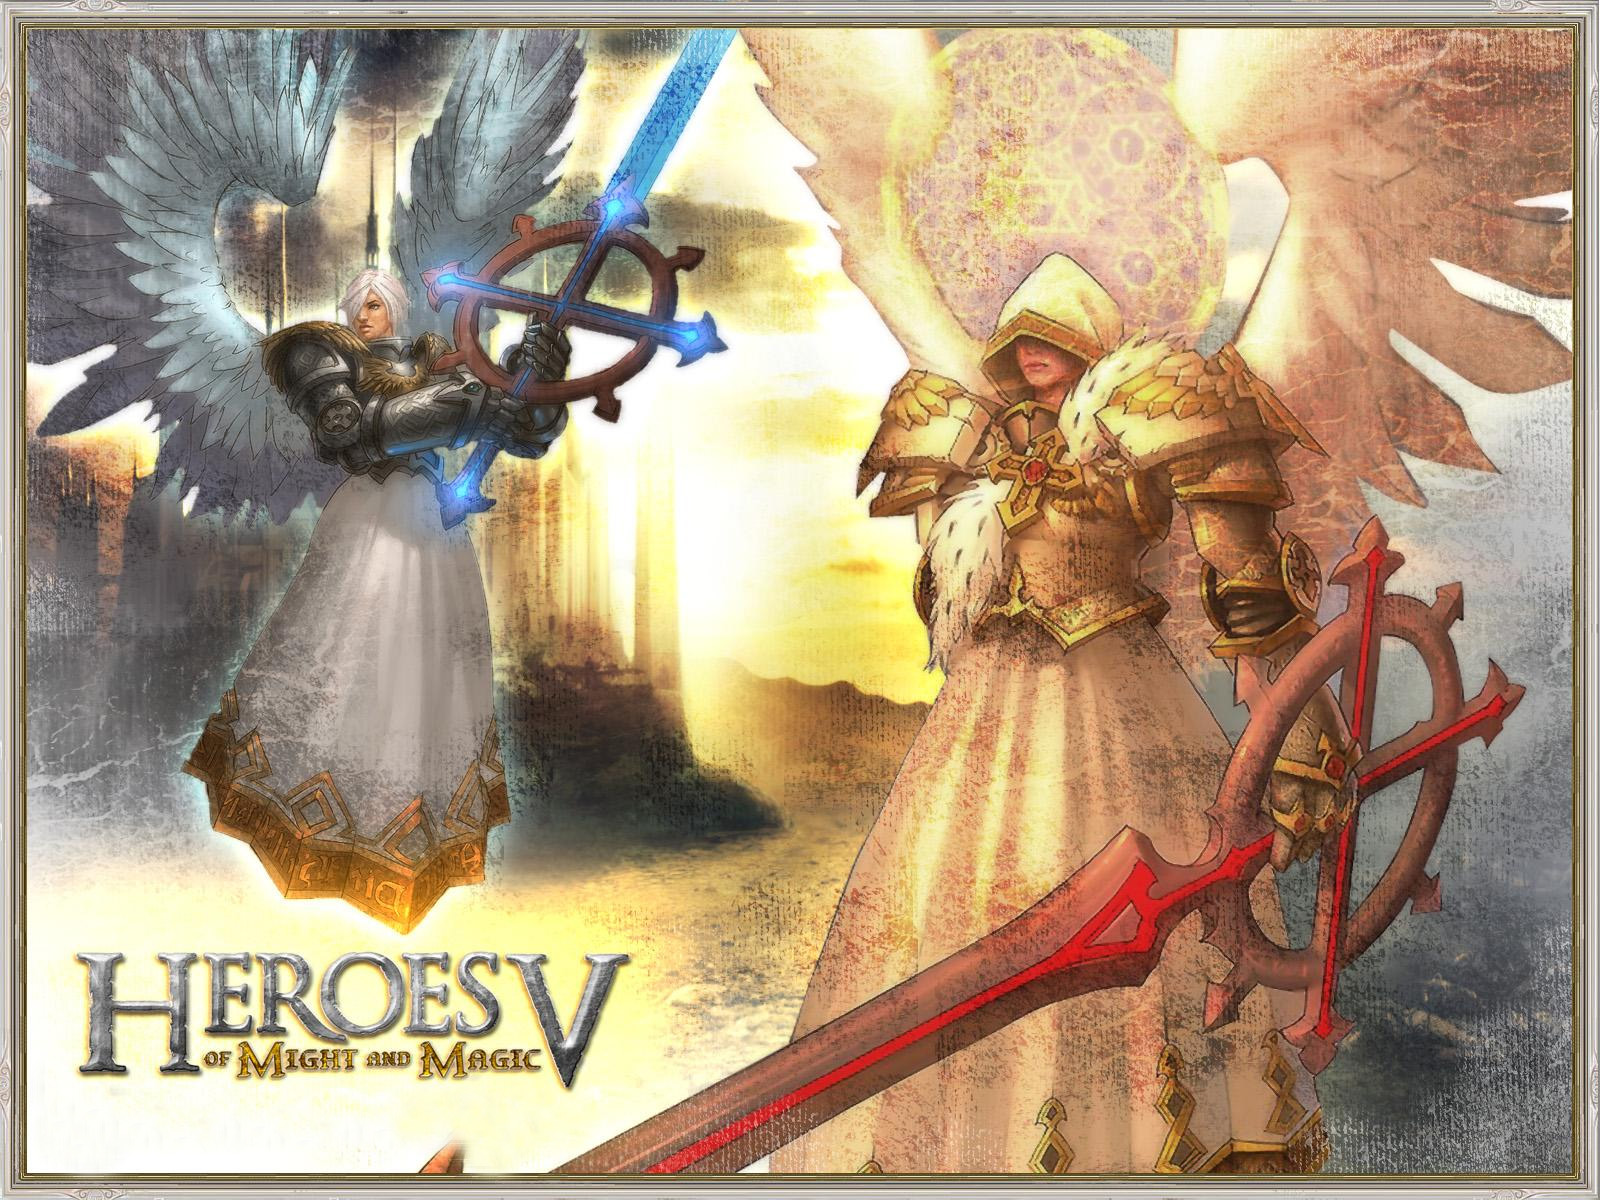 Wallpapers Heroes V Heroes Of Might And Magic Swords Warriors